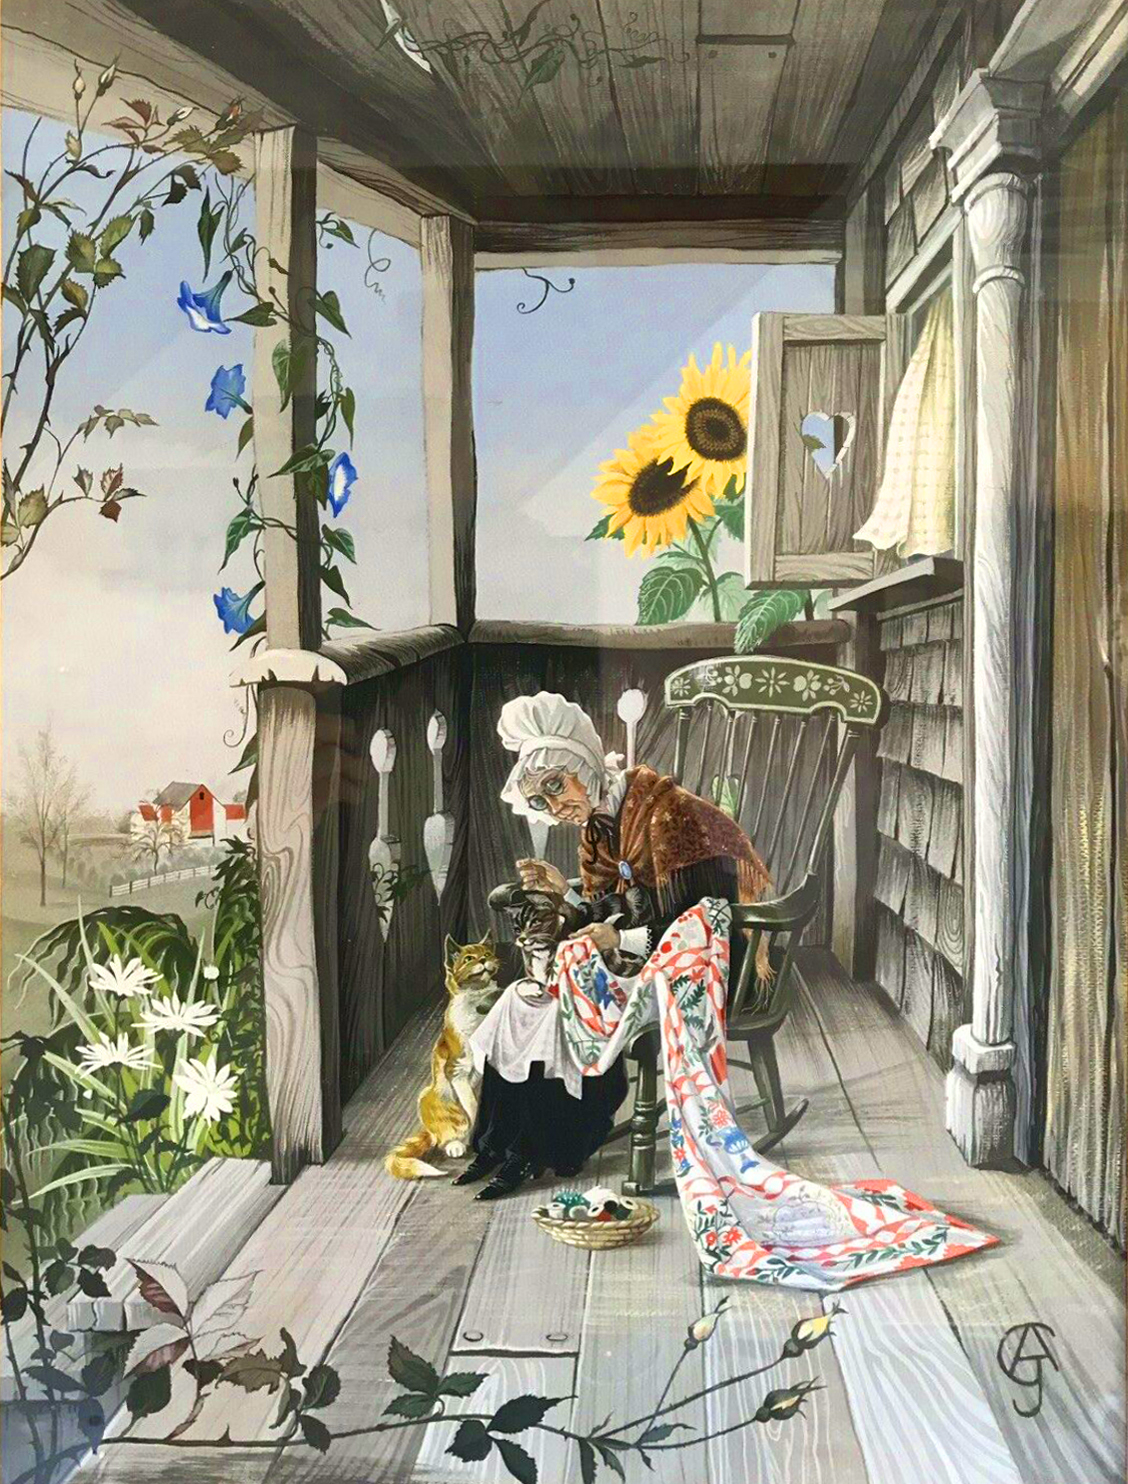 The American Quilt painting by Anne Grahame Johnstone